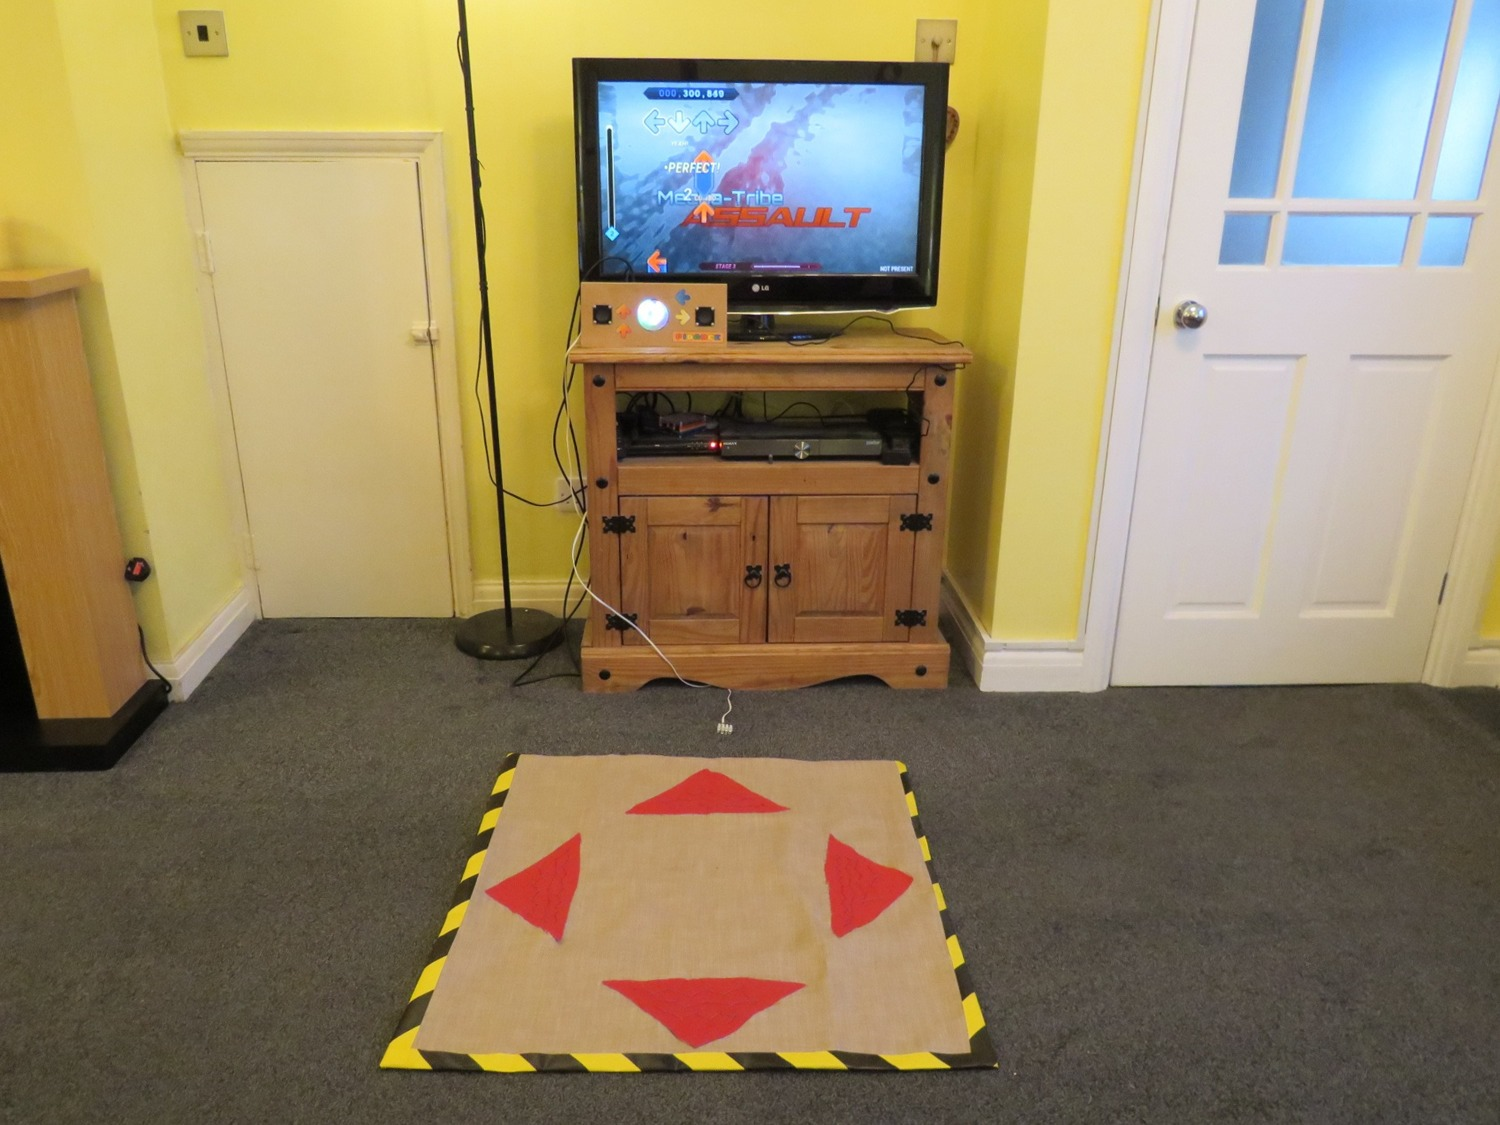 DDR DIY: How to build your own dance game with a Raspberry Pi